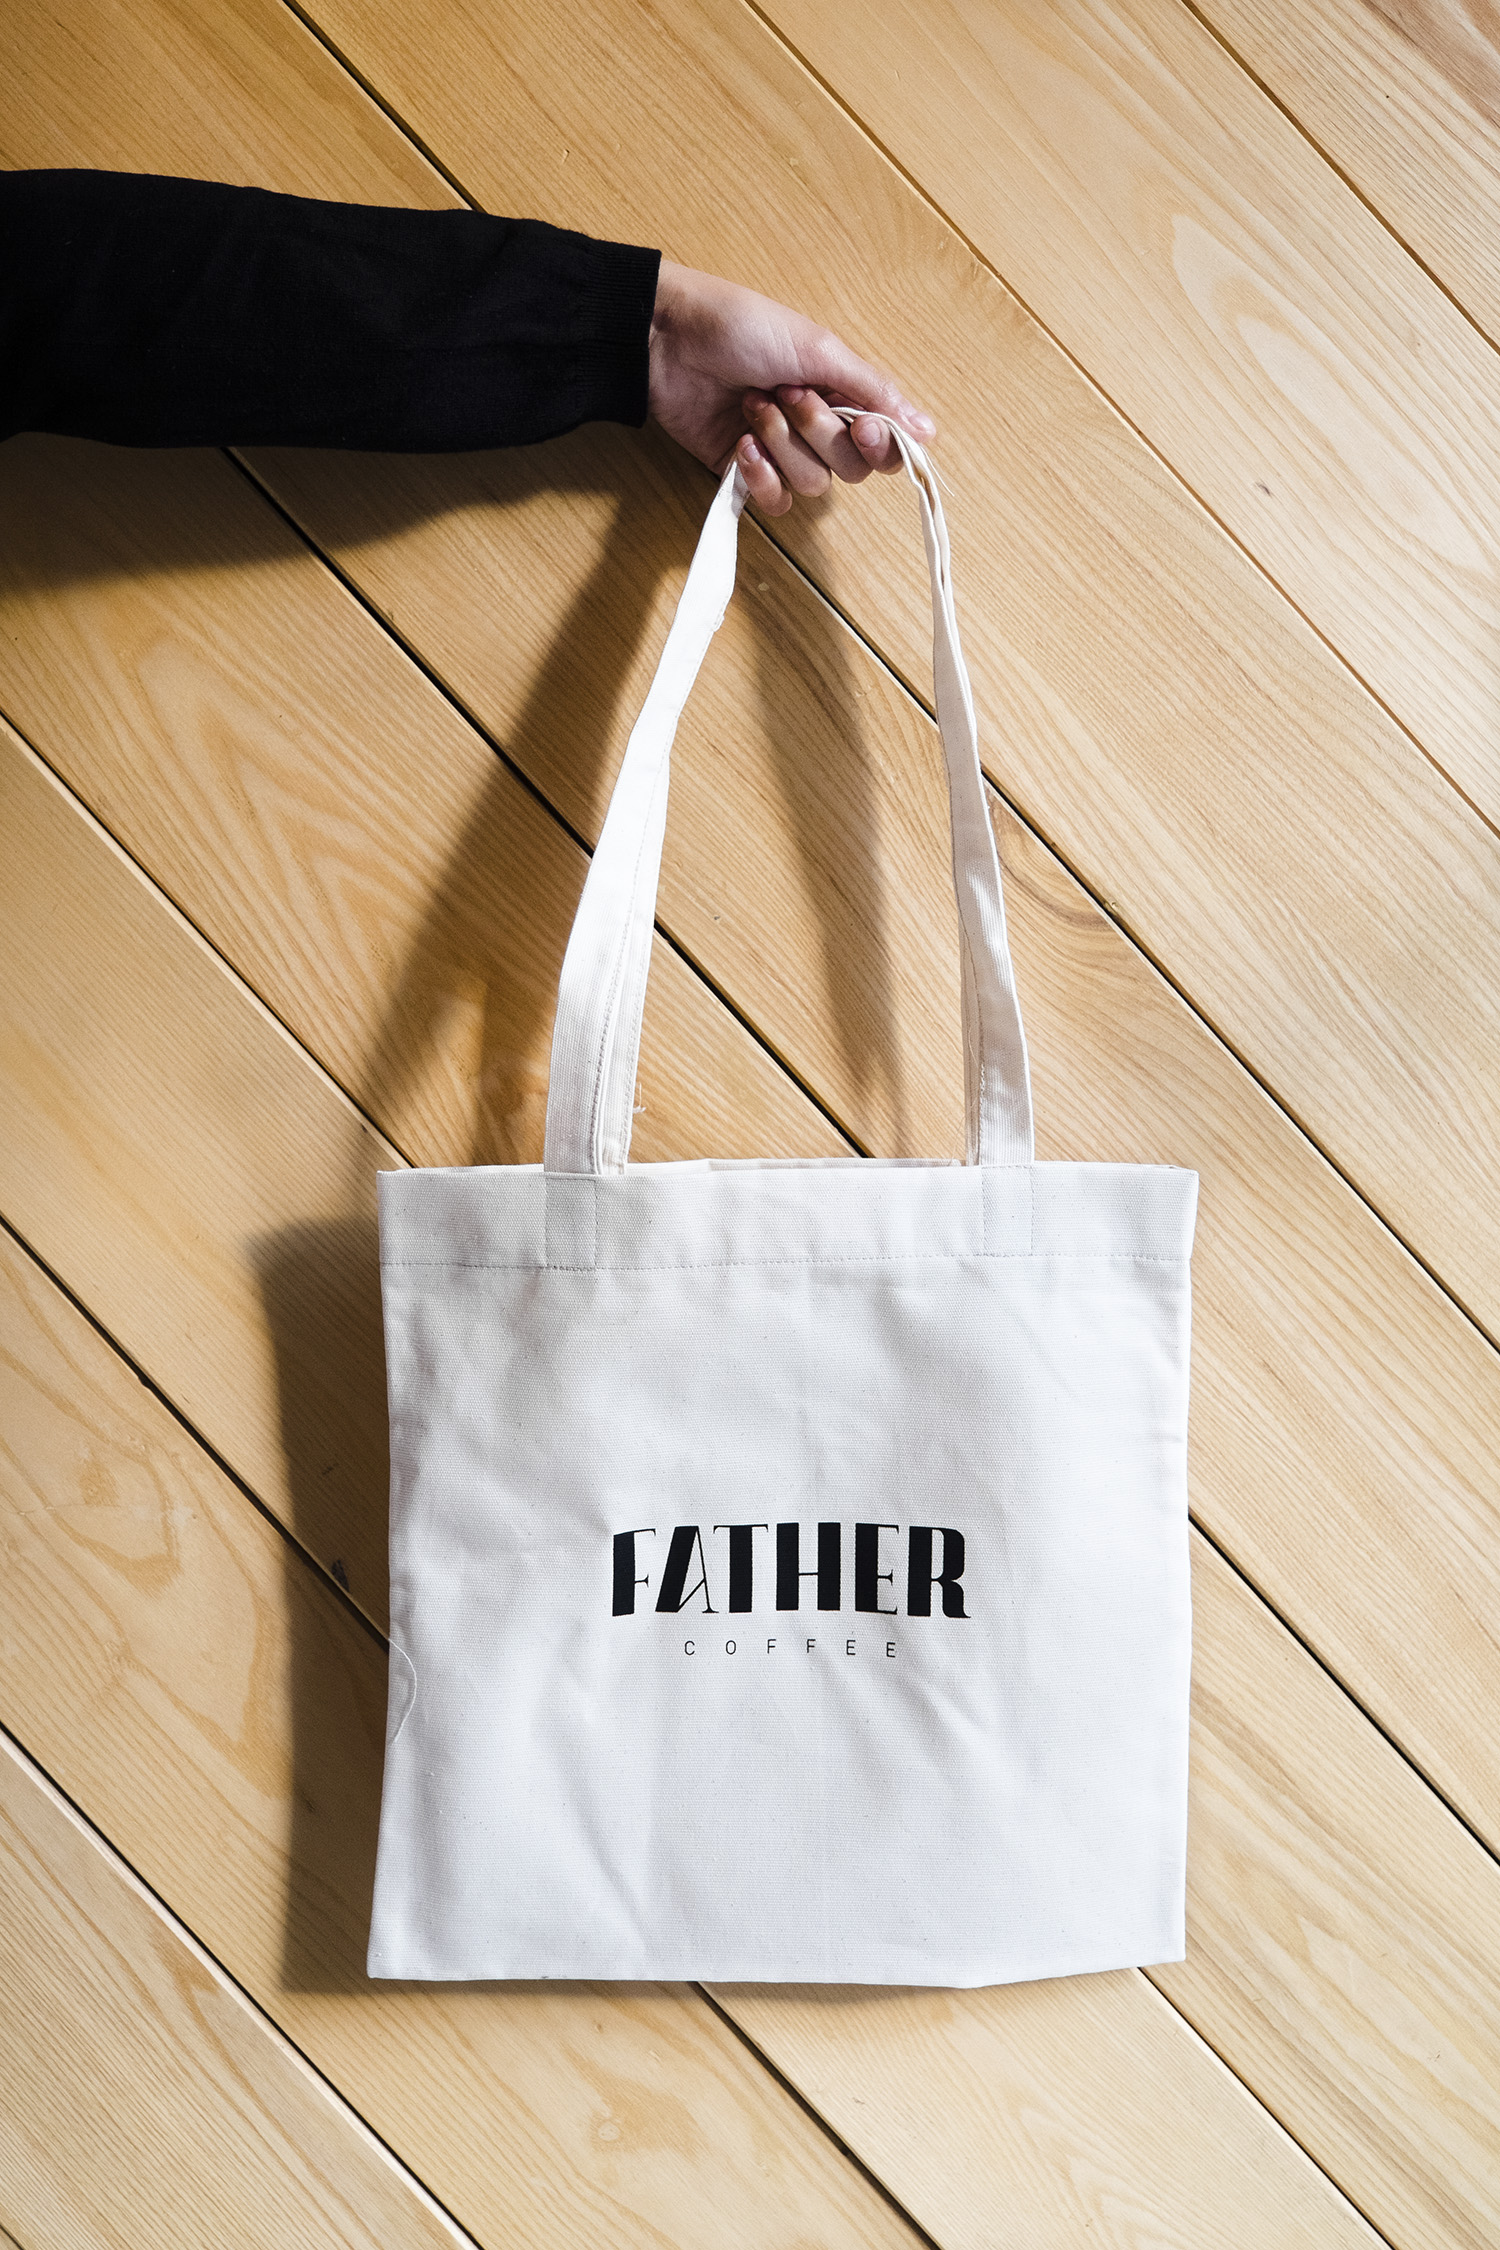 Father Coffee Fresh to death tote